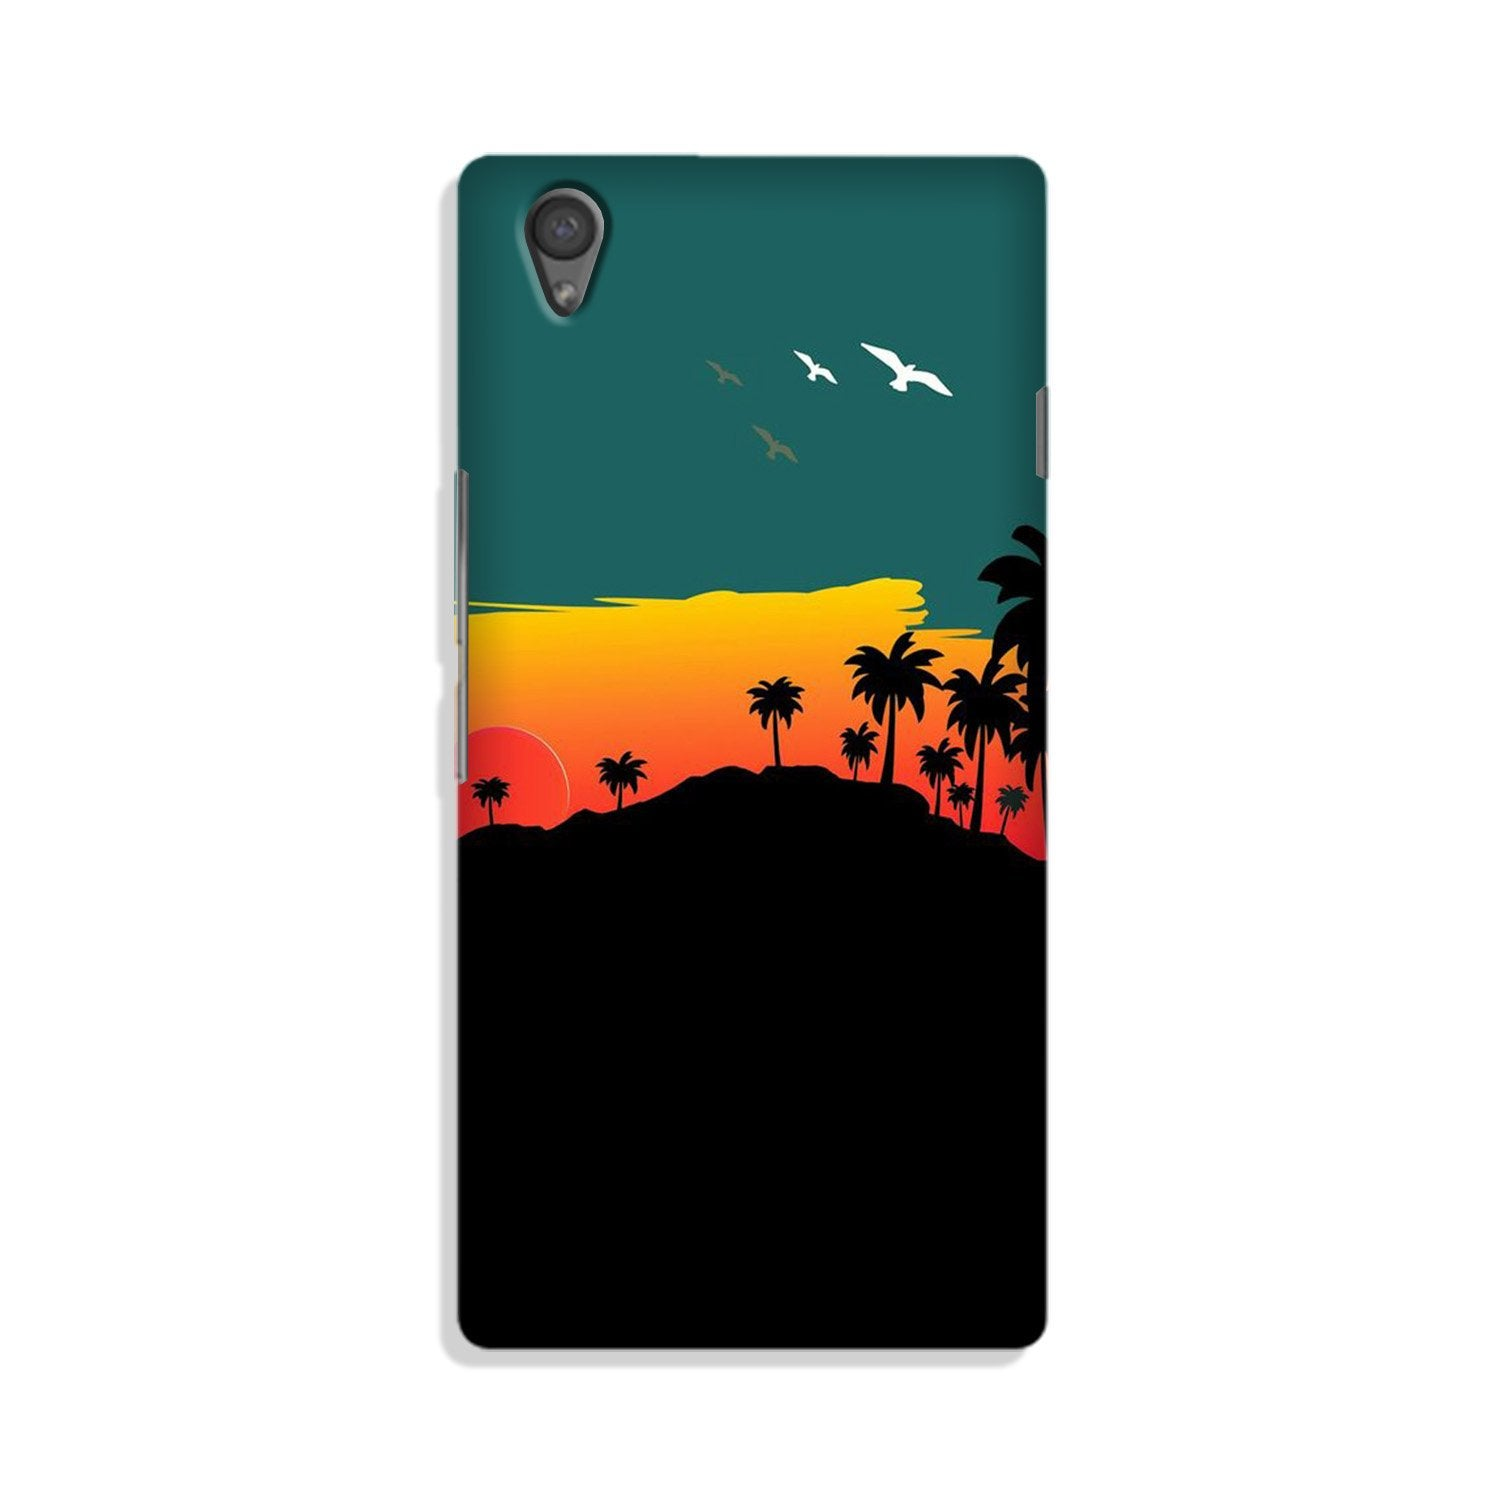 Sky Trees Case for Vivo Y51L (Design - 191)